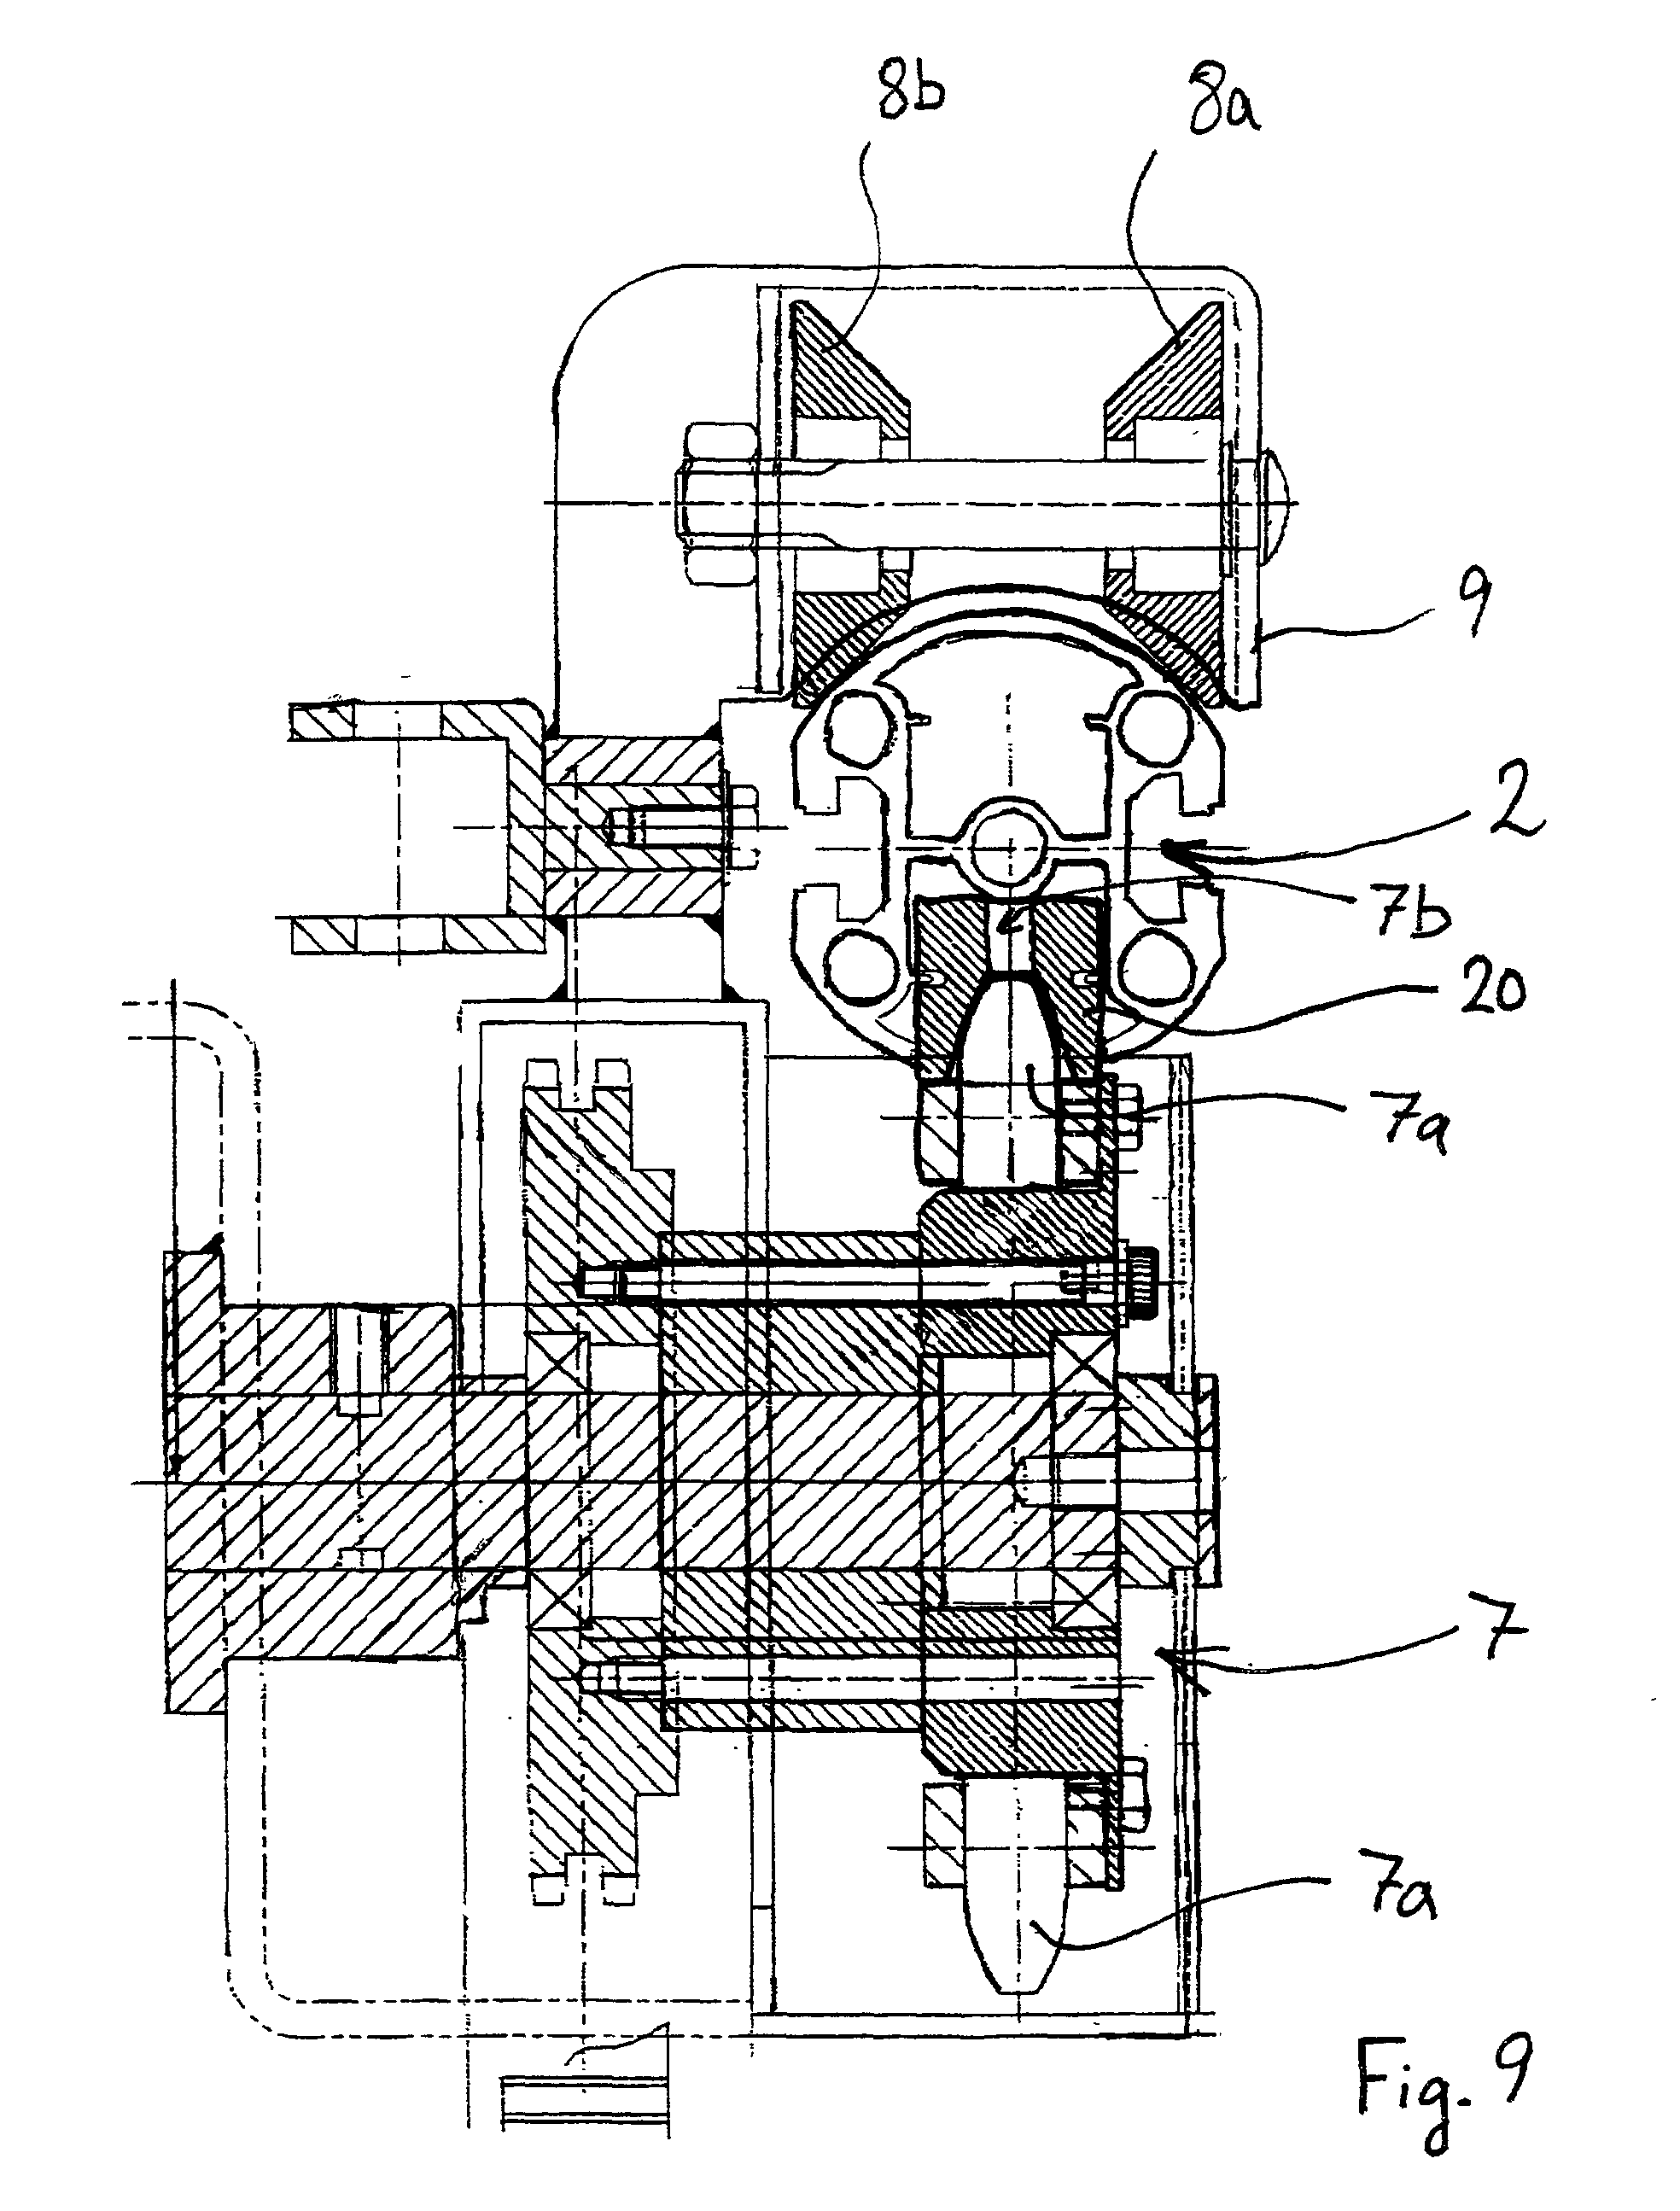 patent ep1236671a1 - driving mechanism for a stairlift